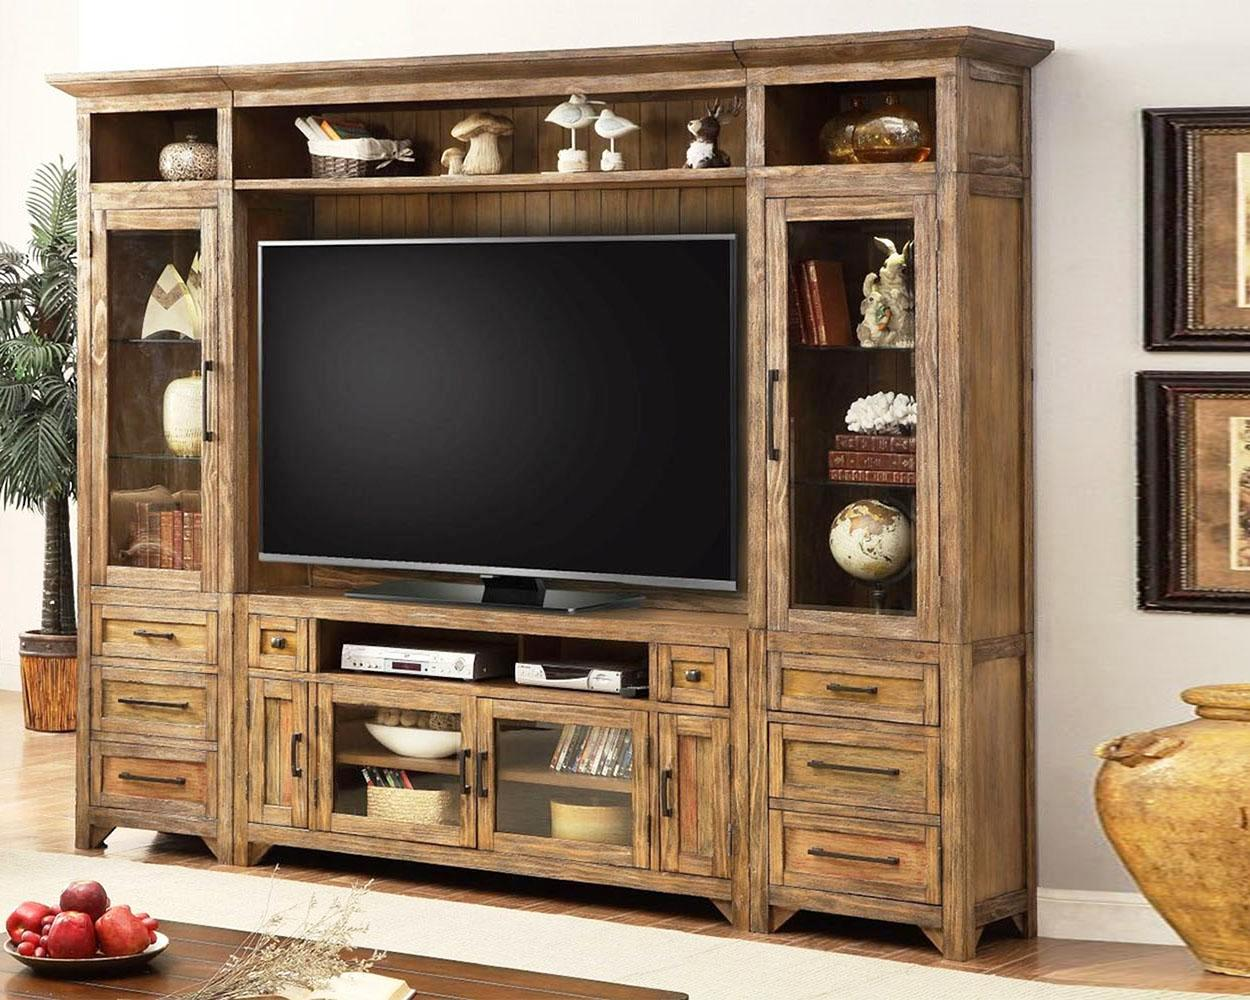 Image of: Entertainment Center Wall Unit